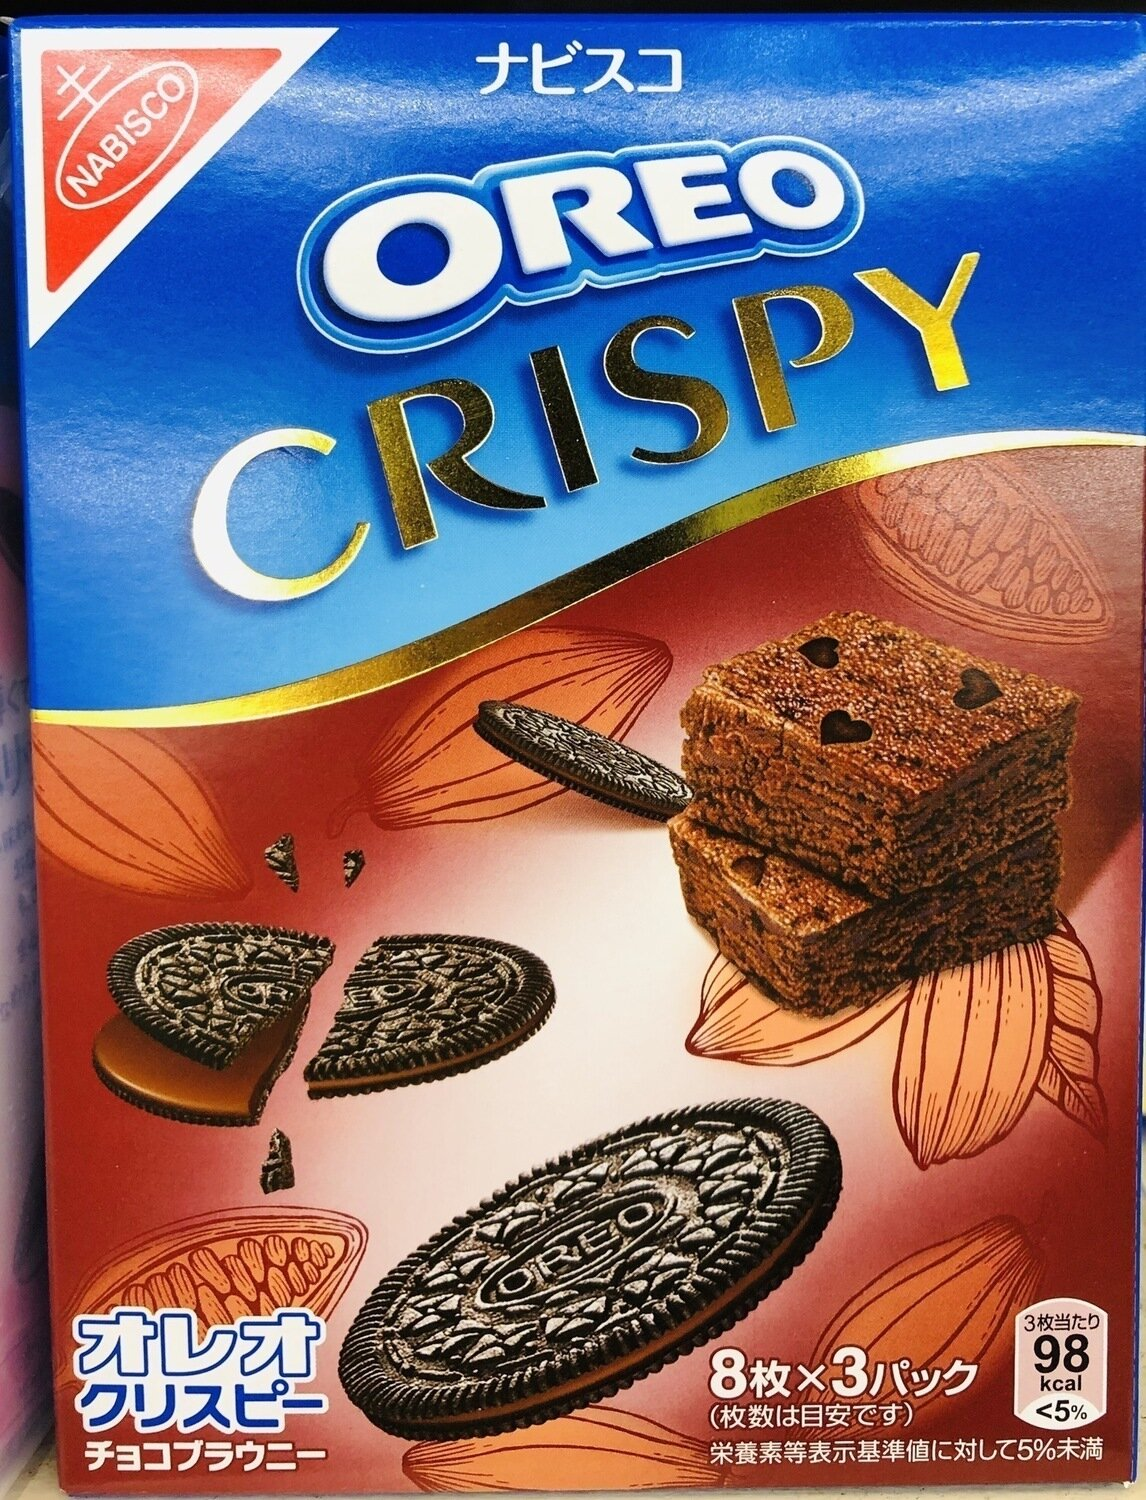 OREO奥利奥巧克力布朗尼 Oreo Crisp Chocolate Brownie~8pc*3